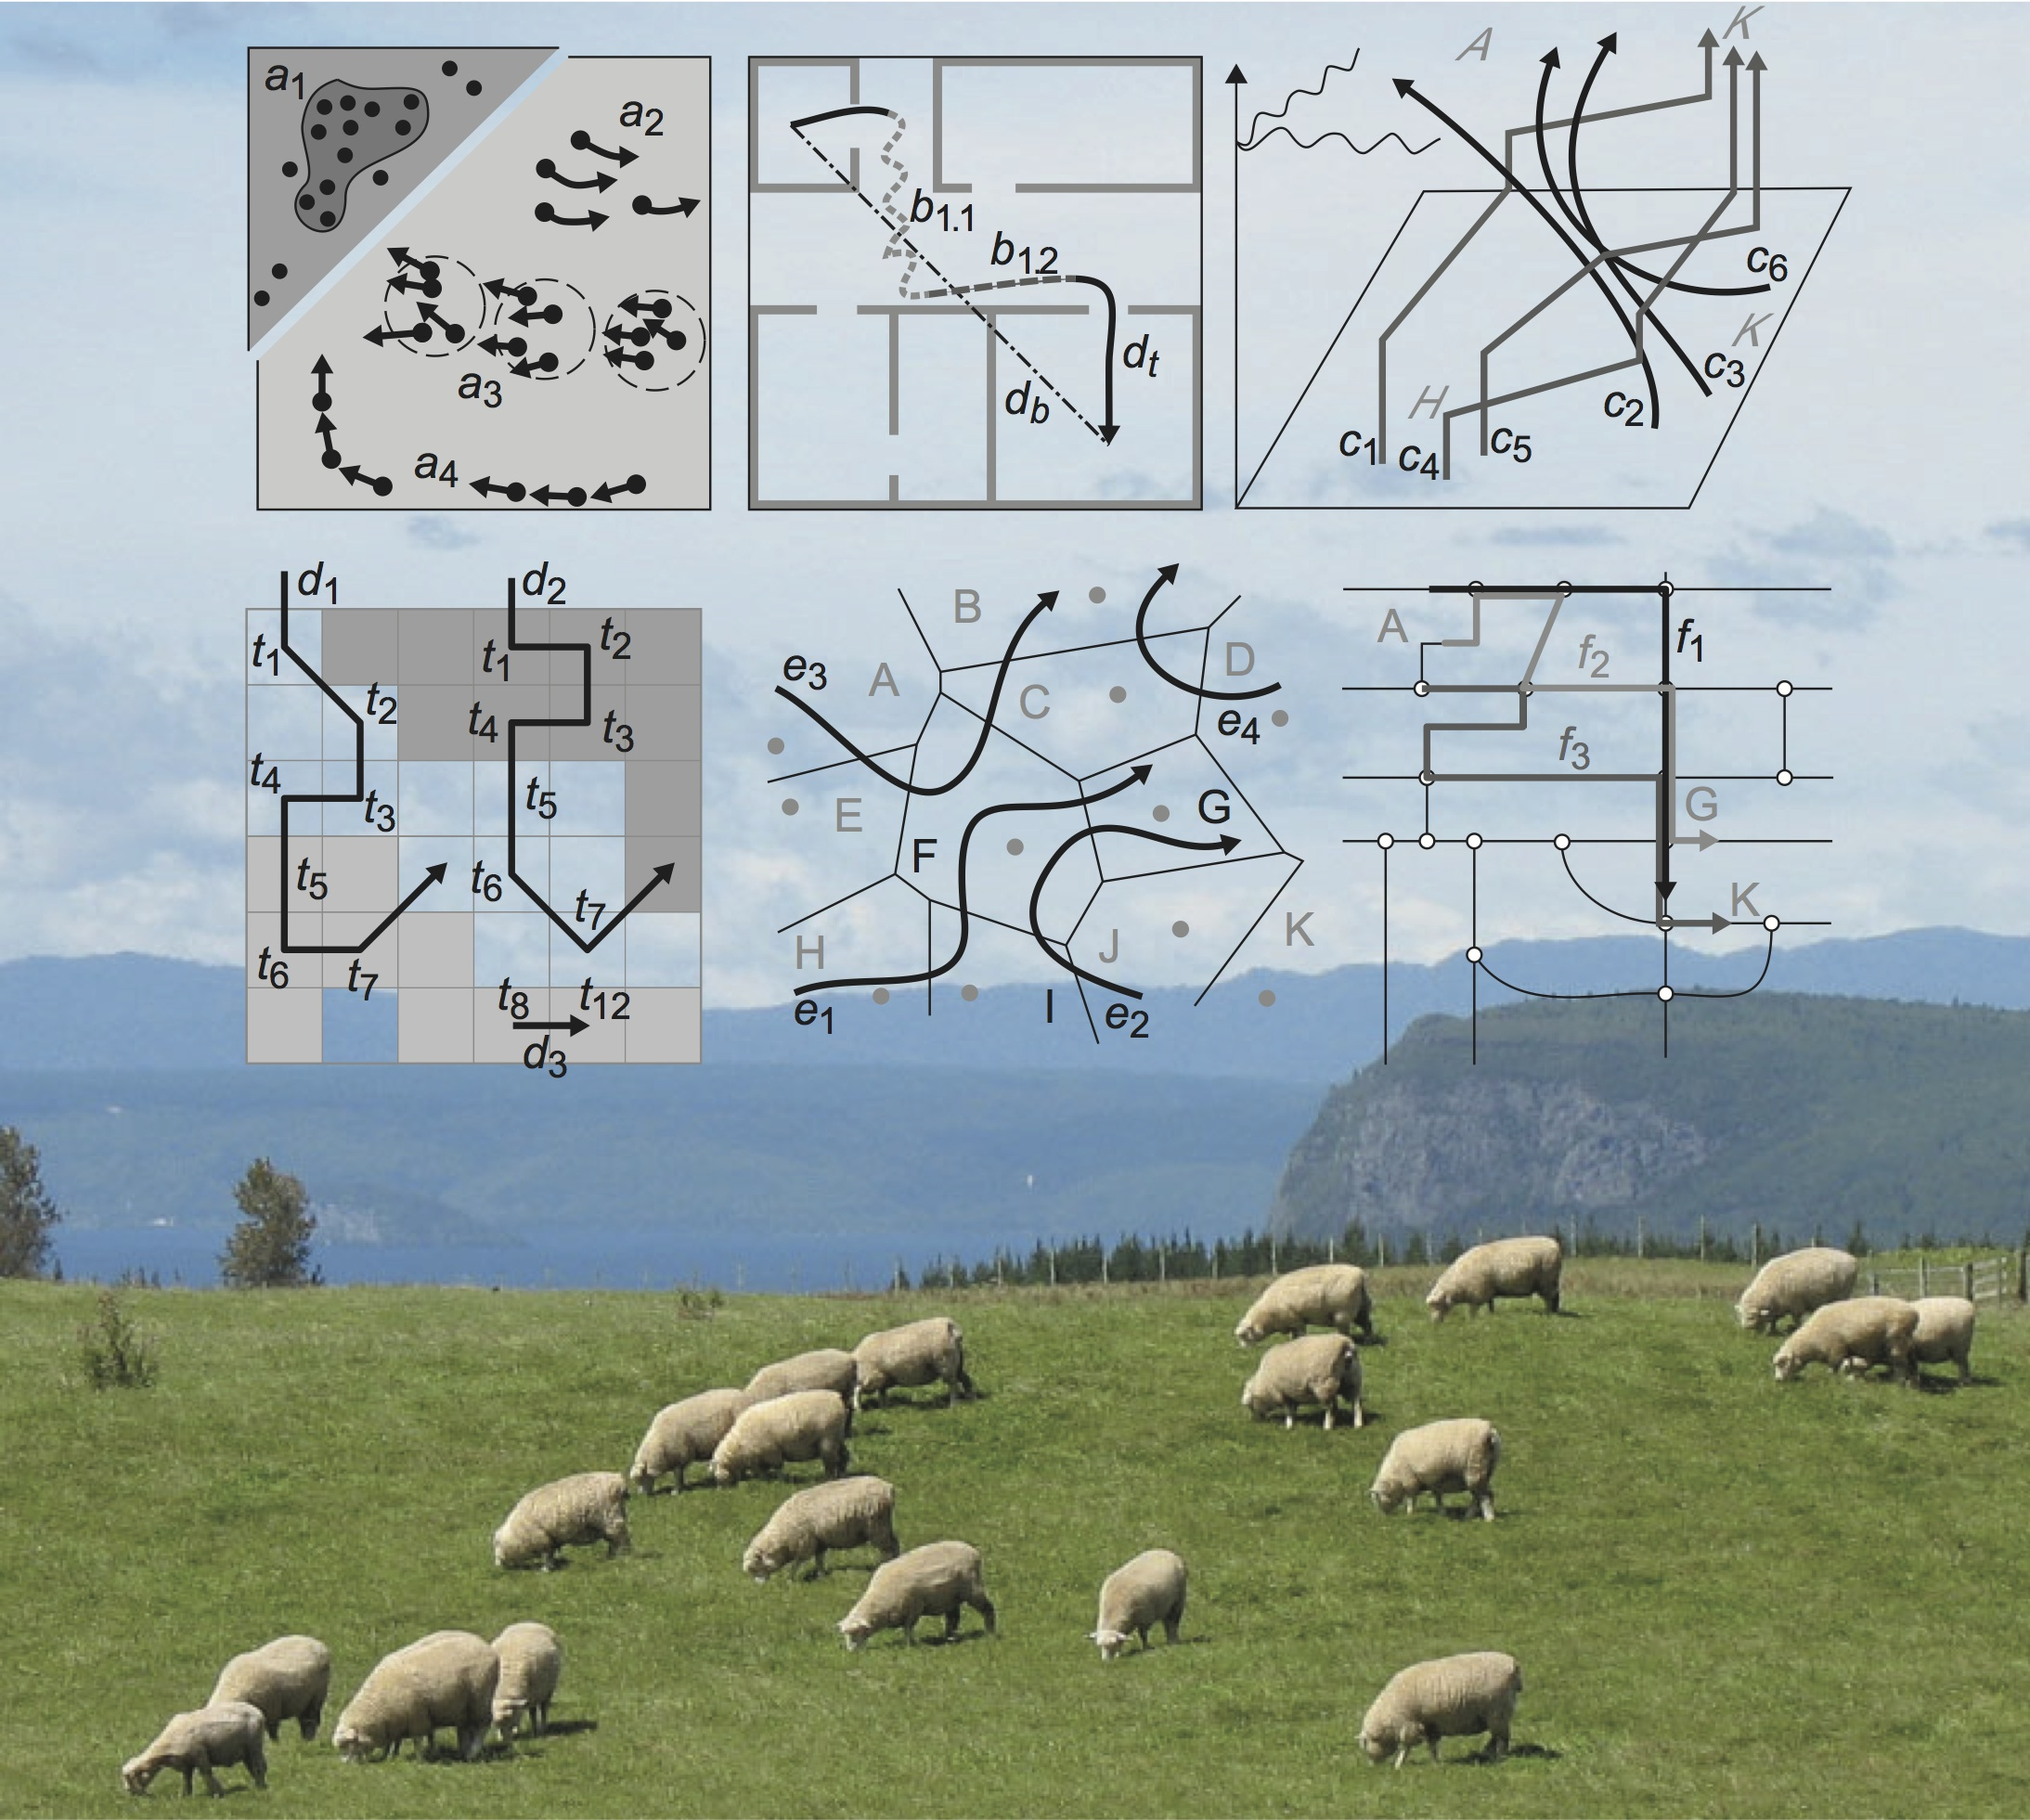 Movement patterns reveal structure in movement data, for instance, a group of grazing sheep that 'flock' together. We conceptualize a wide range of movement patterns and develop and evaluate algorithms for their automatic detection.